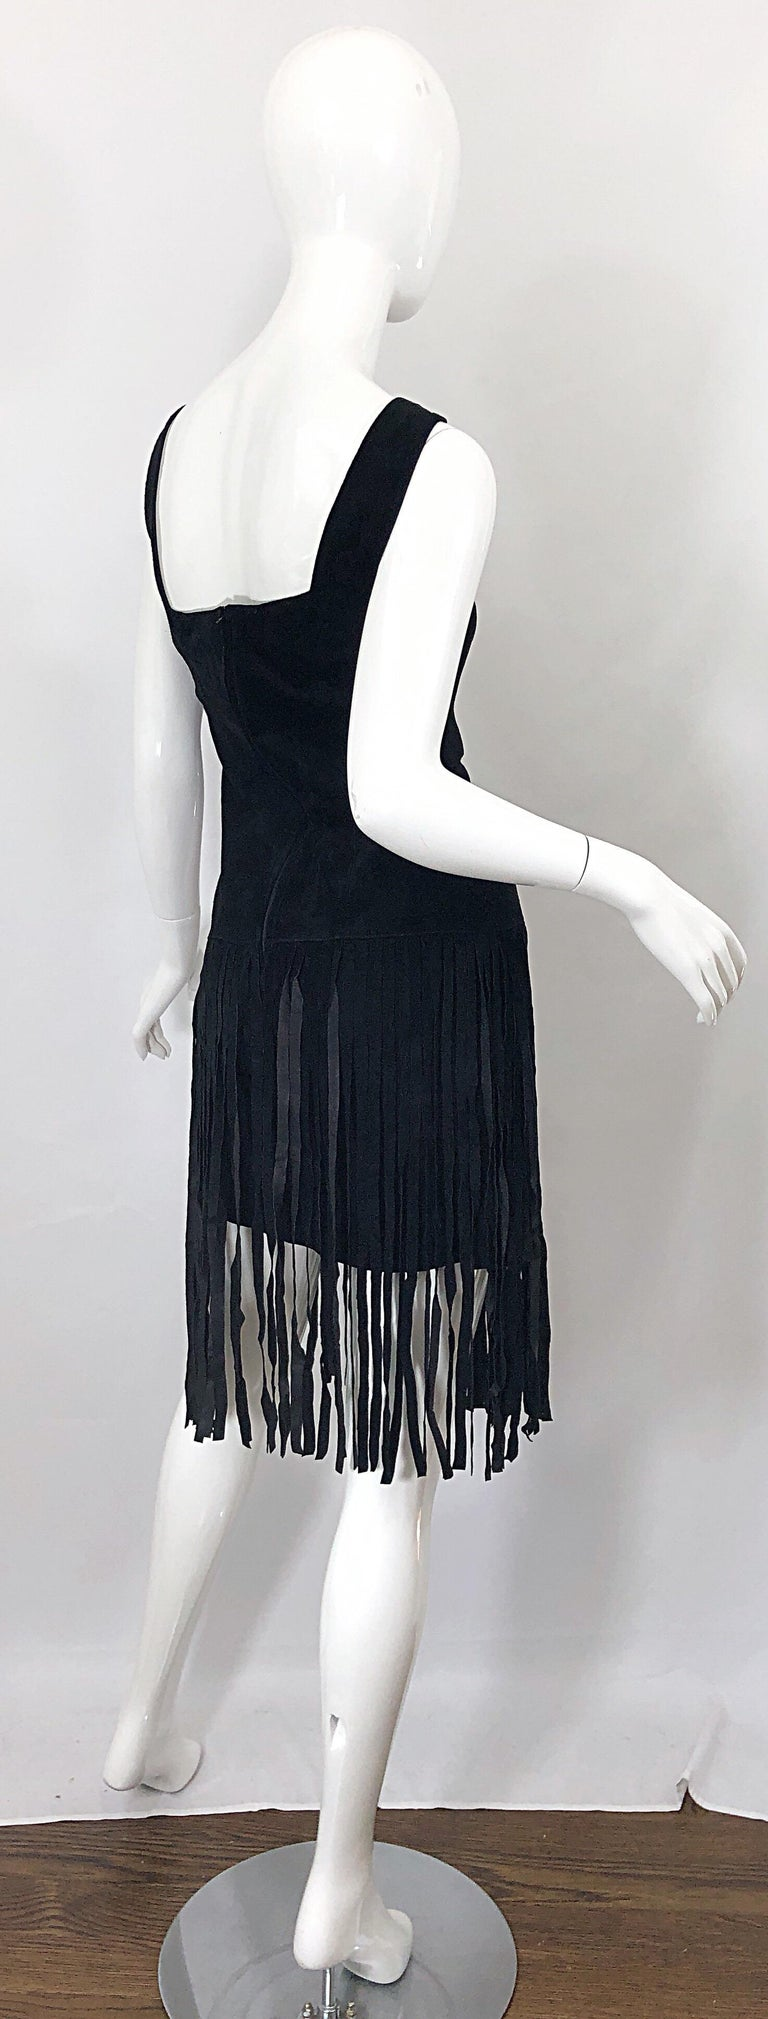 1990s Erez for Lillie Rubin Size 10 Leather Suede Fringe Vintage 90s Mini Dress For Sale 4